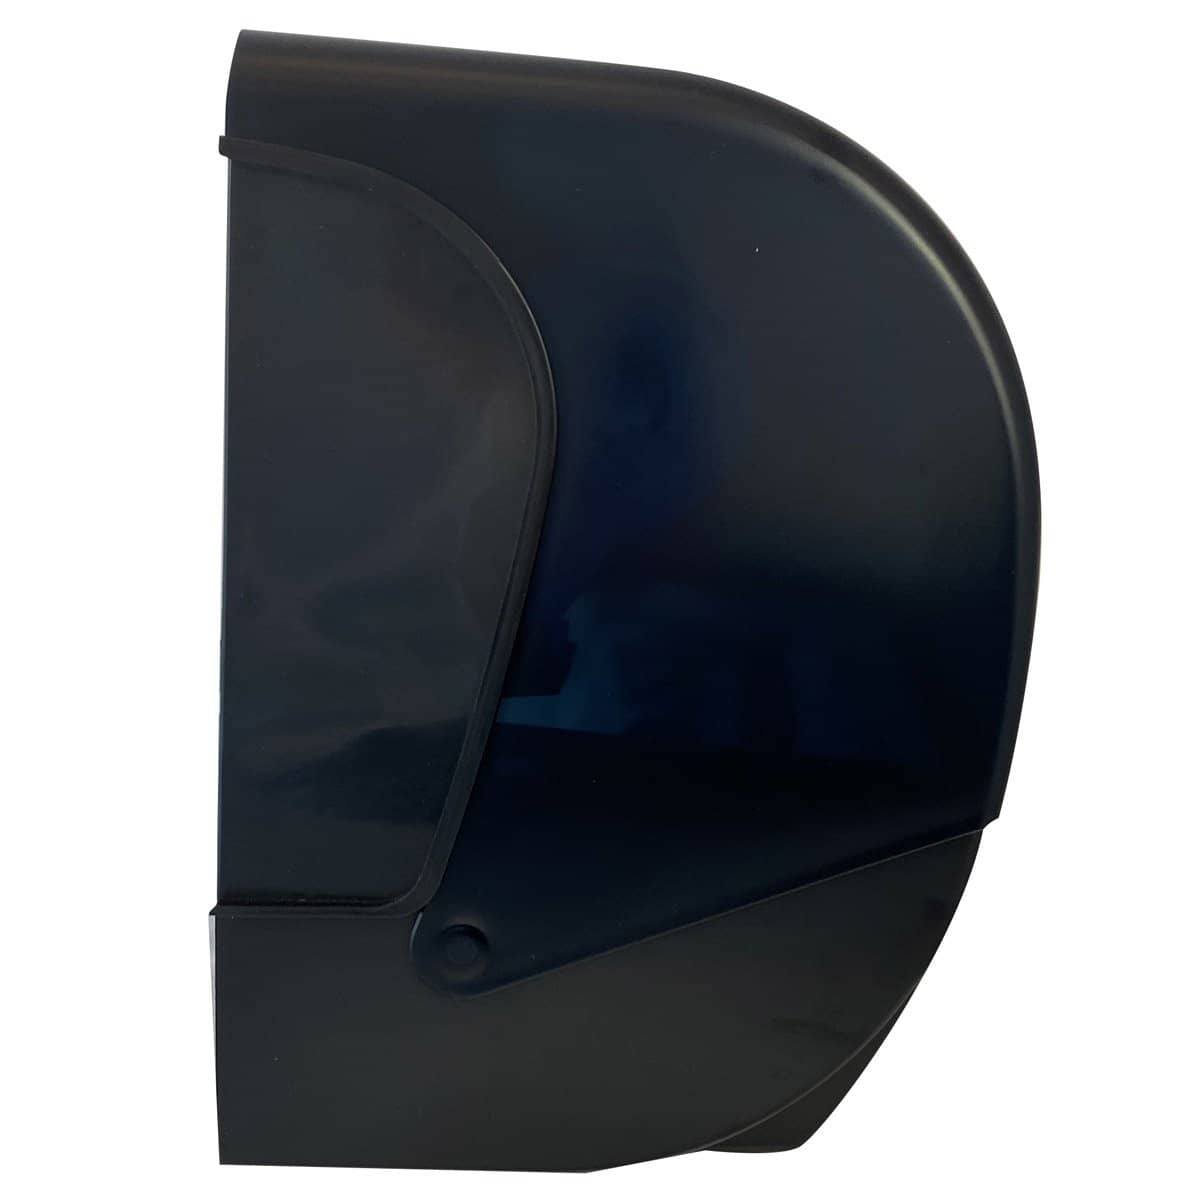 VISTA Electronic Hands Free Roll Towel Dispenser, Black Translucent - PT2006 - TotalRestroom.com